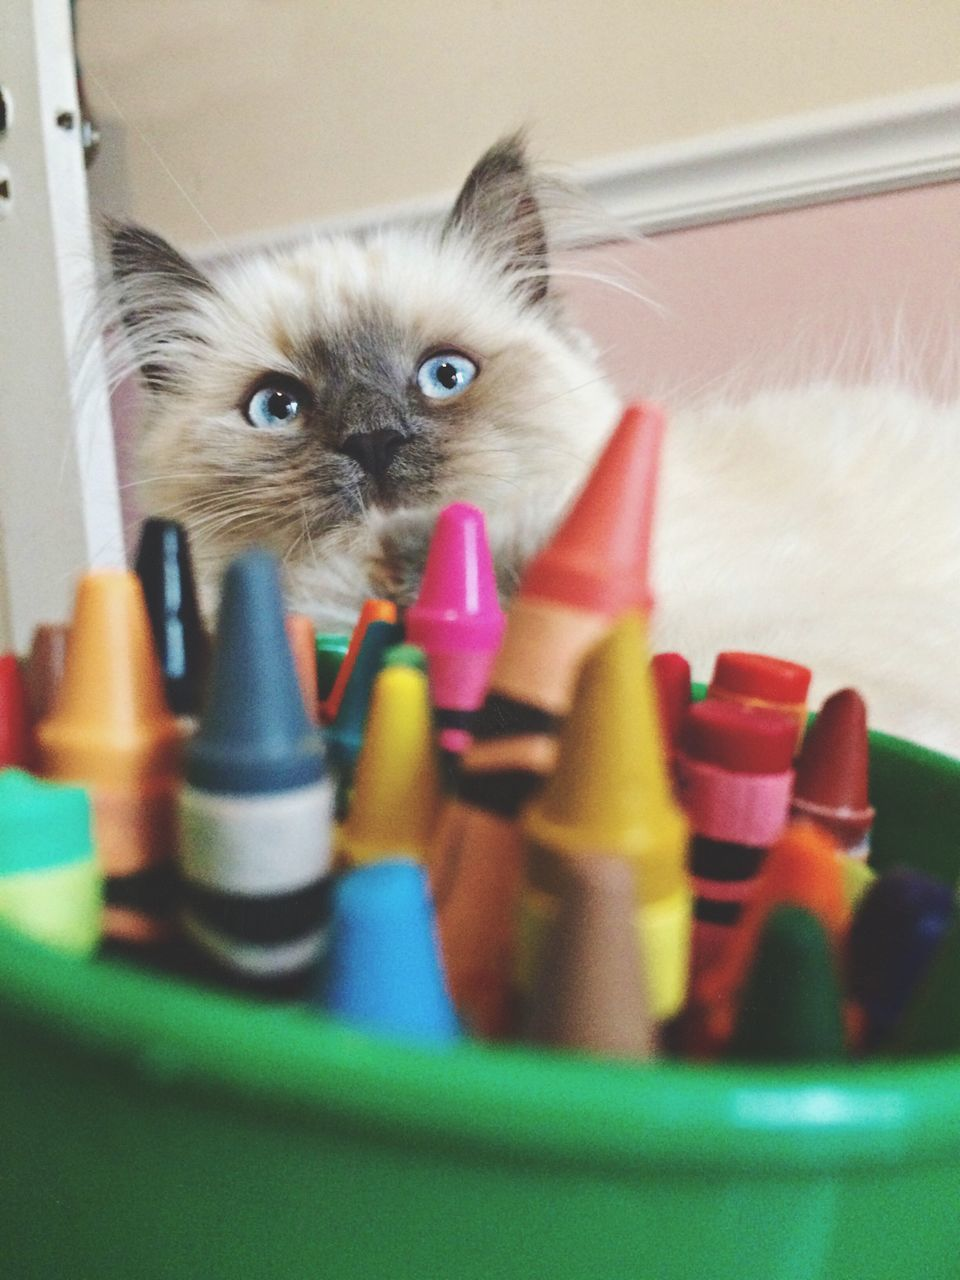 domestic cat, pets, domestic animals, feline, animal themes, one animal, mammal, whisker, cat, indoors, looking at camera, portrait, selective focus, kitten, sitting, young animal, no people, alertness, siamese cat, playing, day, persian cat, close-up